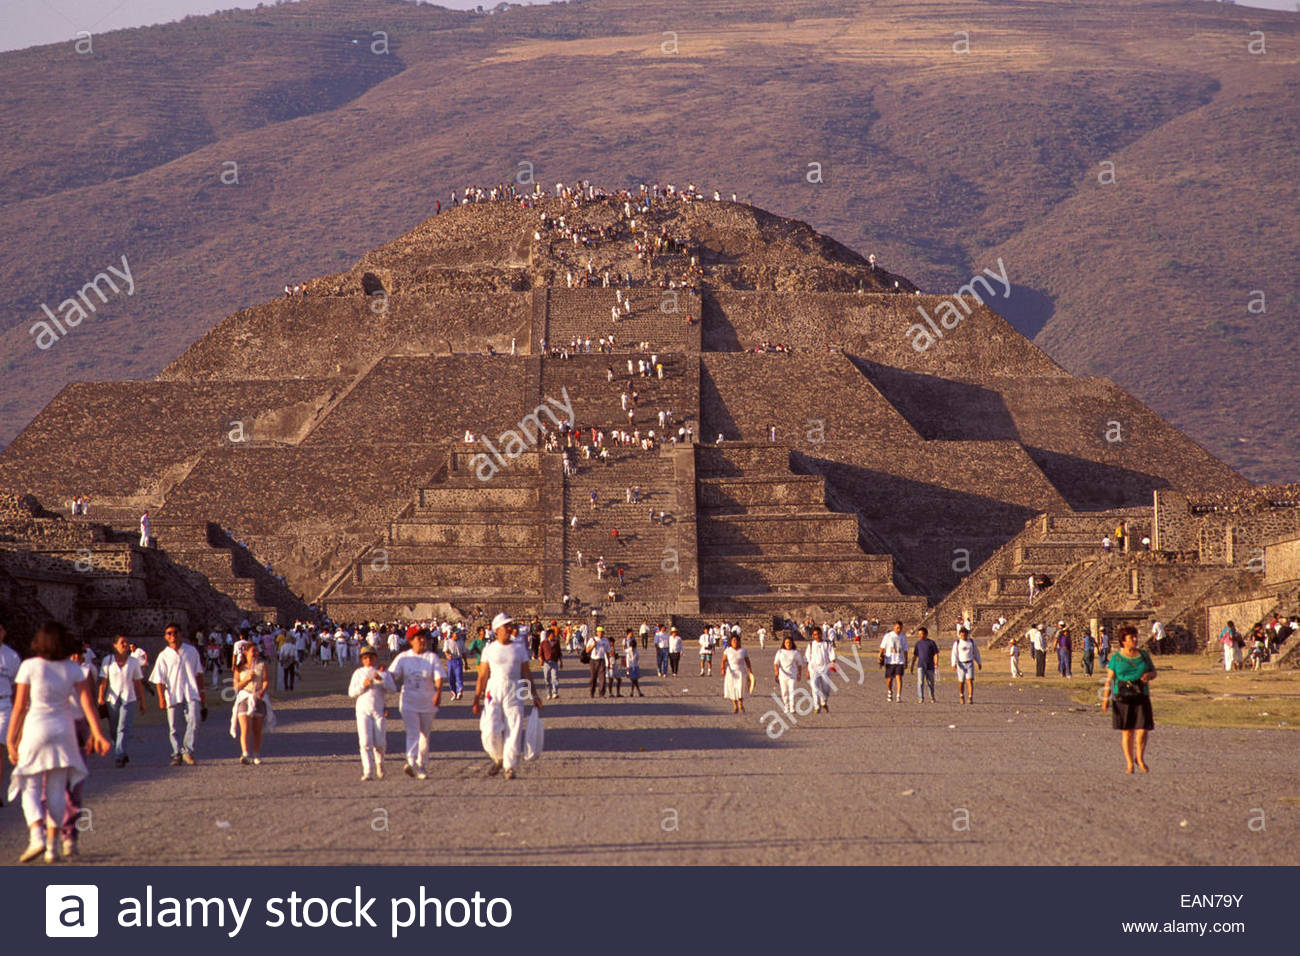 Mexico, archeological site of Teotihuacan, Pyramid of the Moon Stock Photo